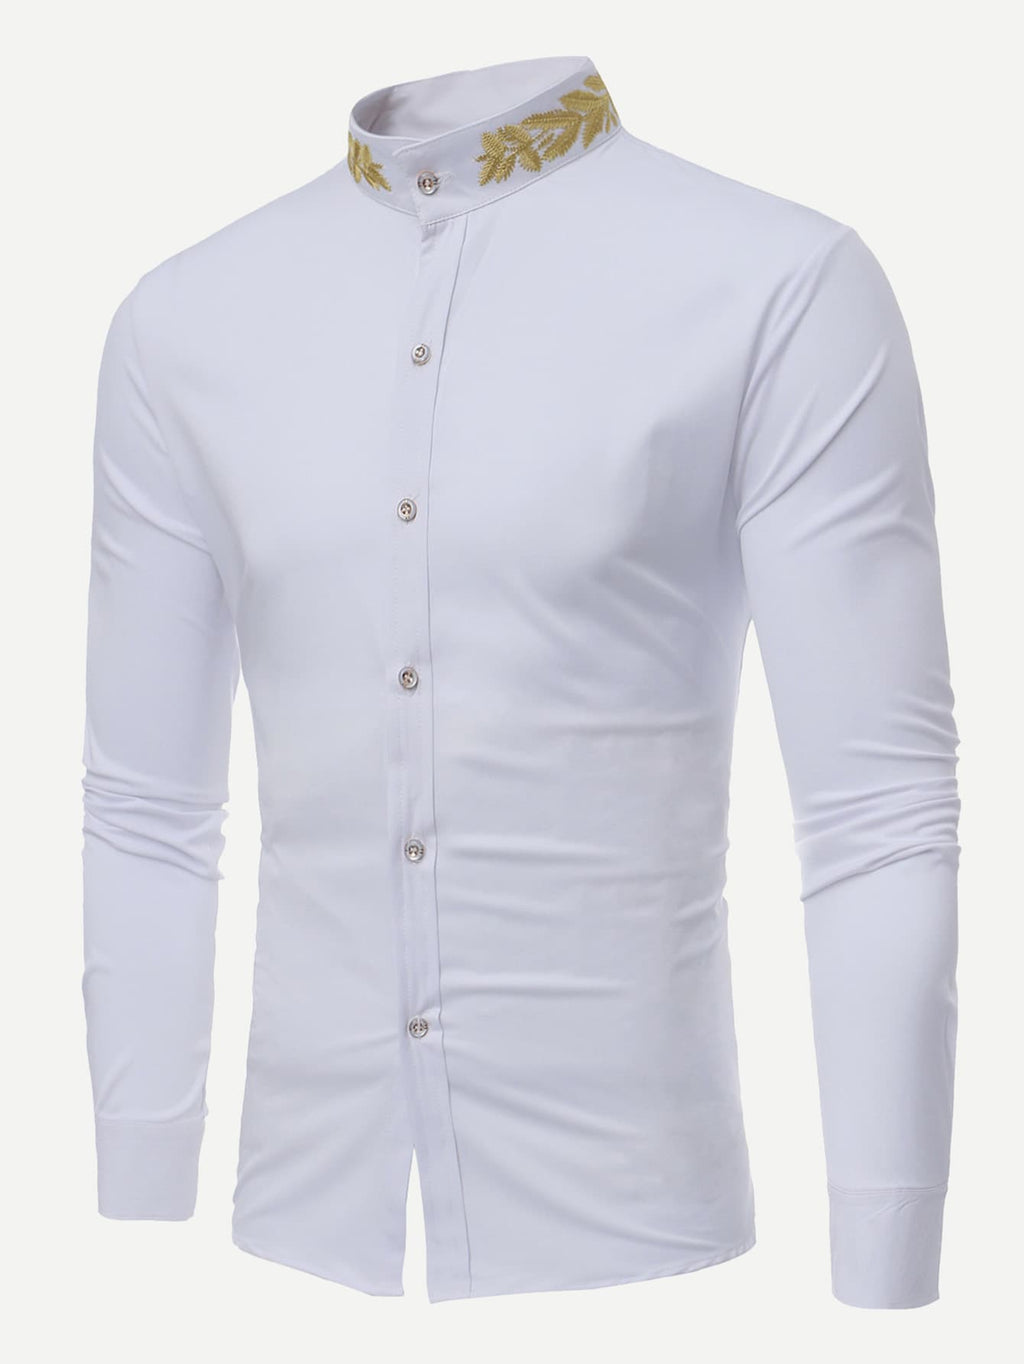 Dress Shirts For Men - Wheat Ears Embroidery Shirt